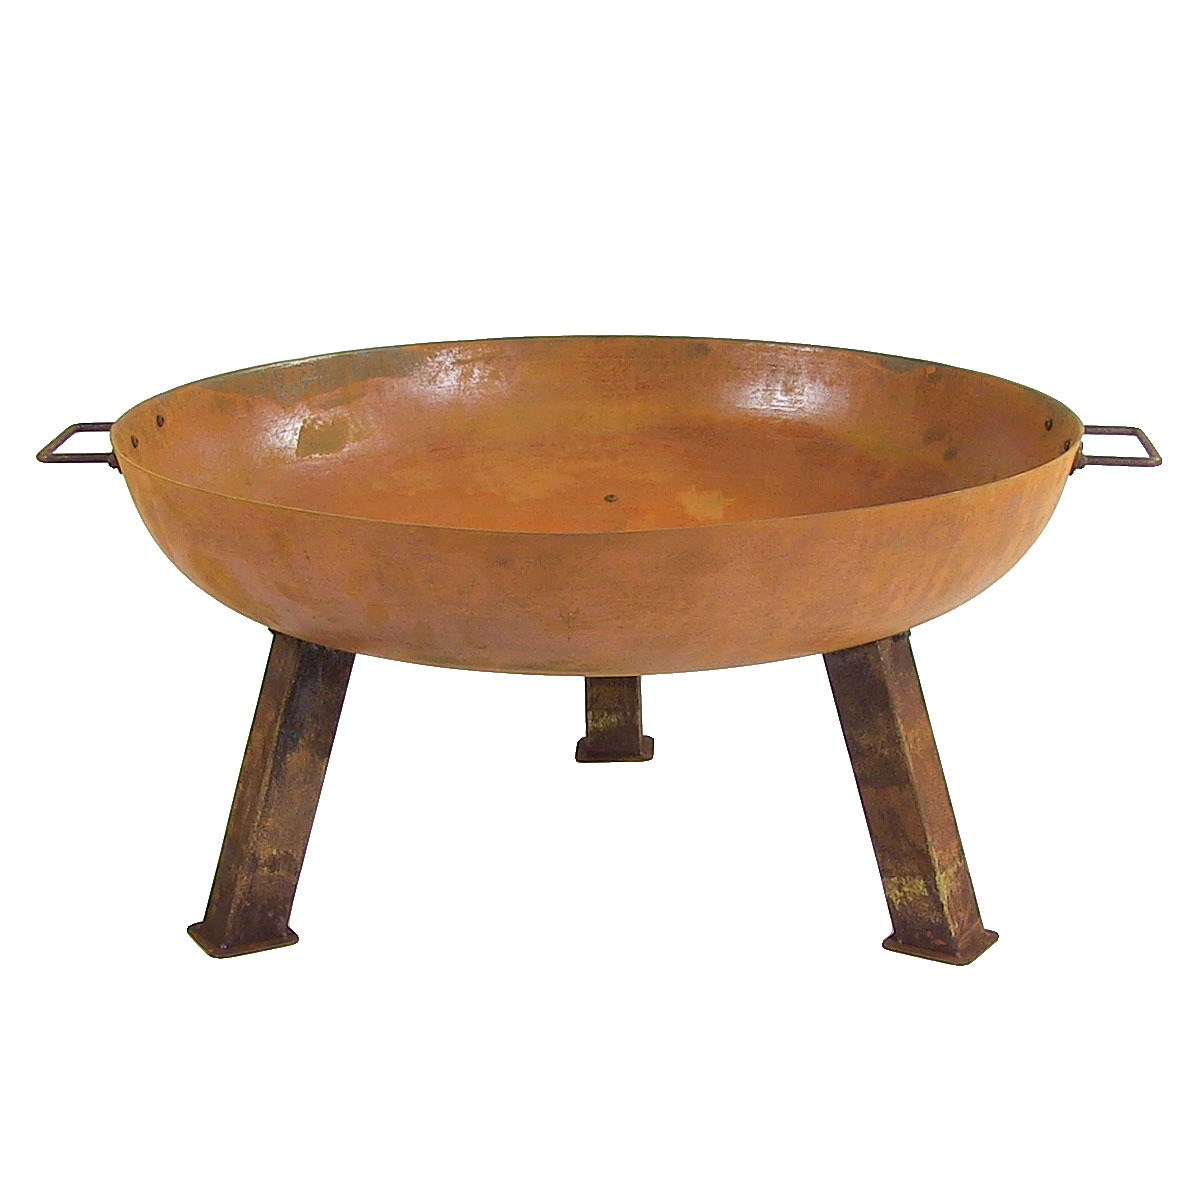 Small Fire Pit Bowl Iron Wood Burning Patio Backyard Camping Photo